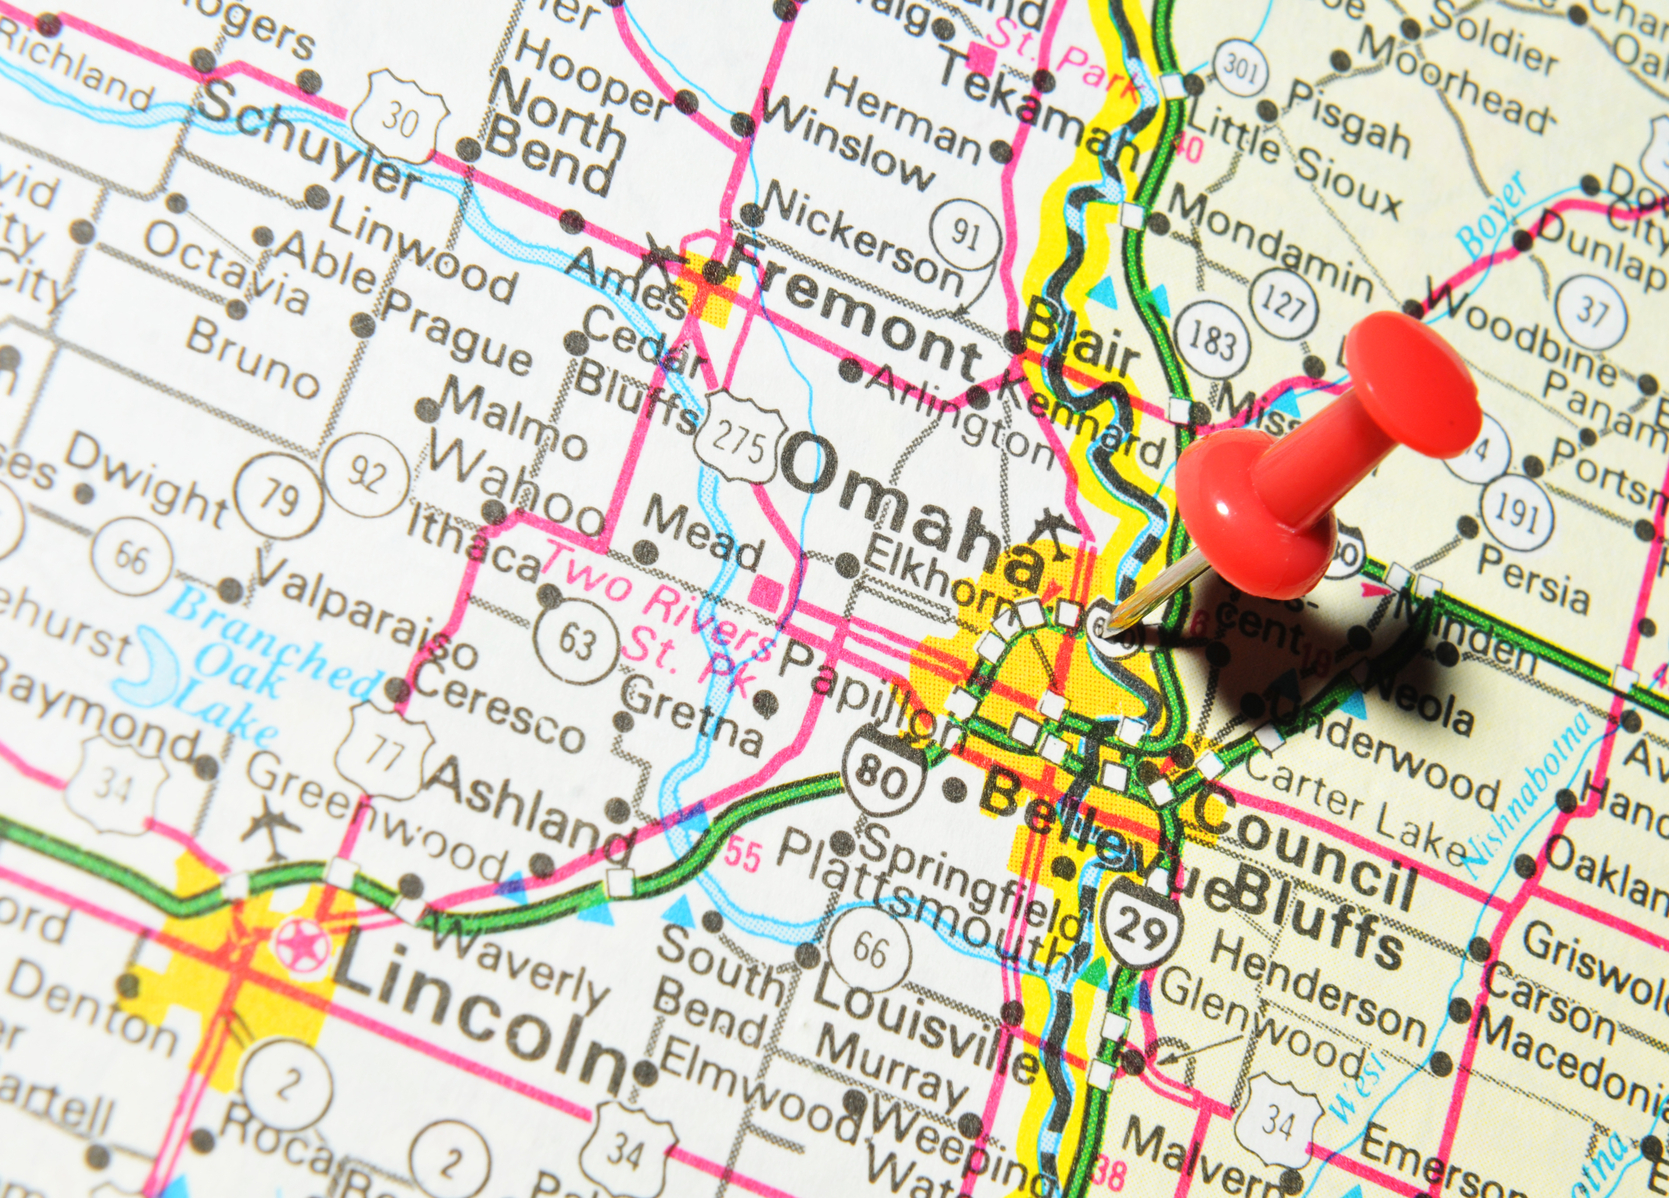 city-omaha-map-digital-marketing-neb